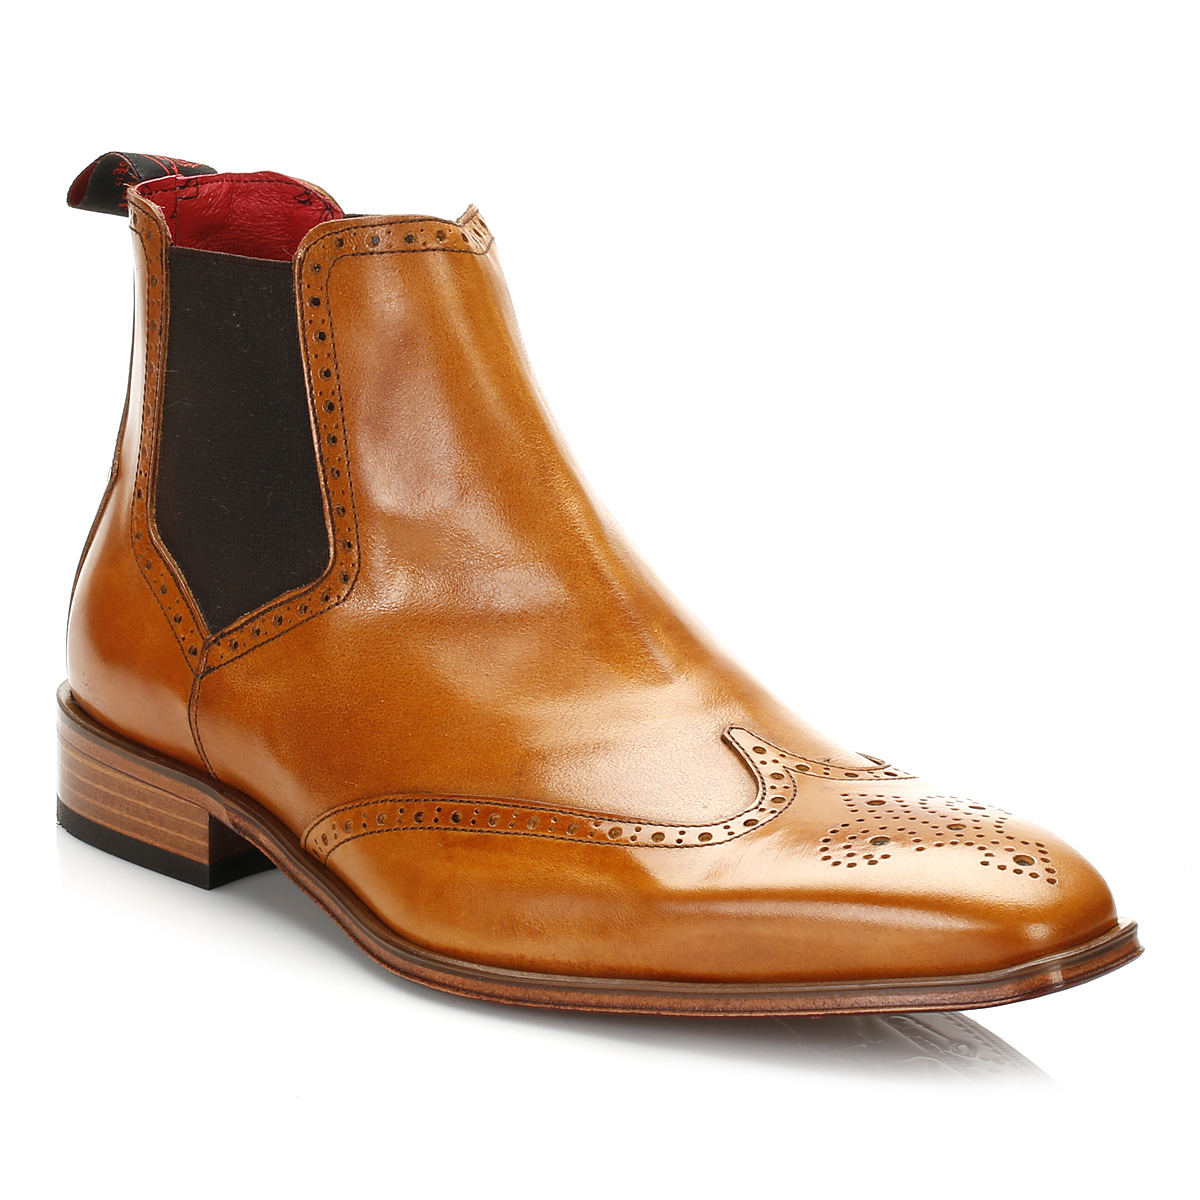 Chelsea Boots As Dress Shoes